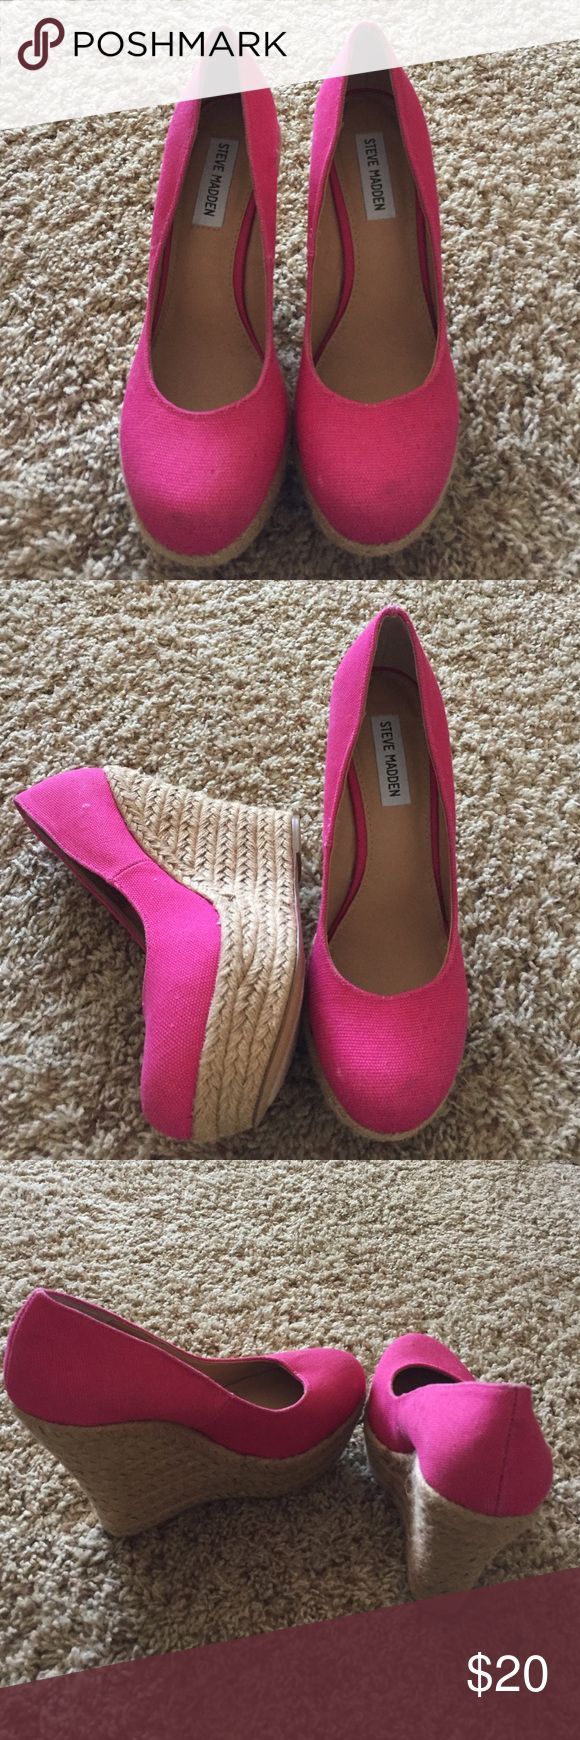 Steve Madden Pink wedges Steve Madden size 8.5 pink wedges Steve Madden Shoes Wedges